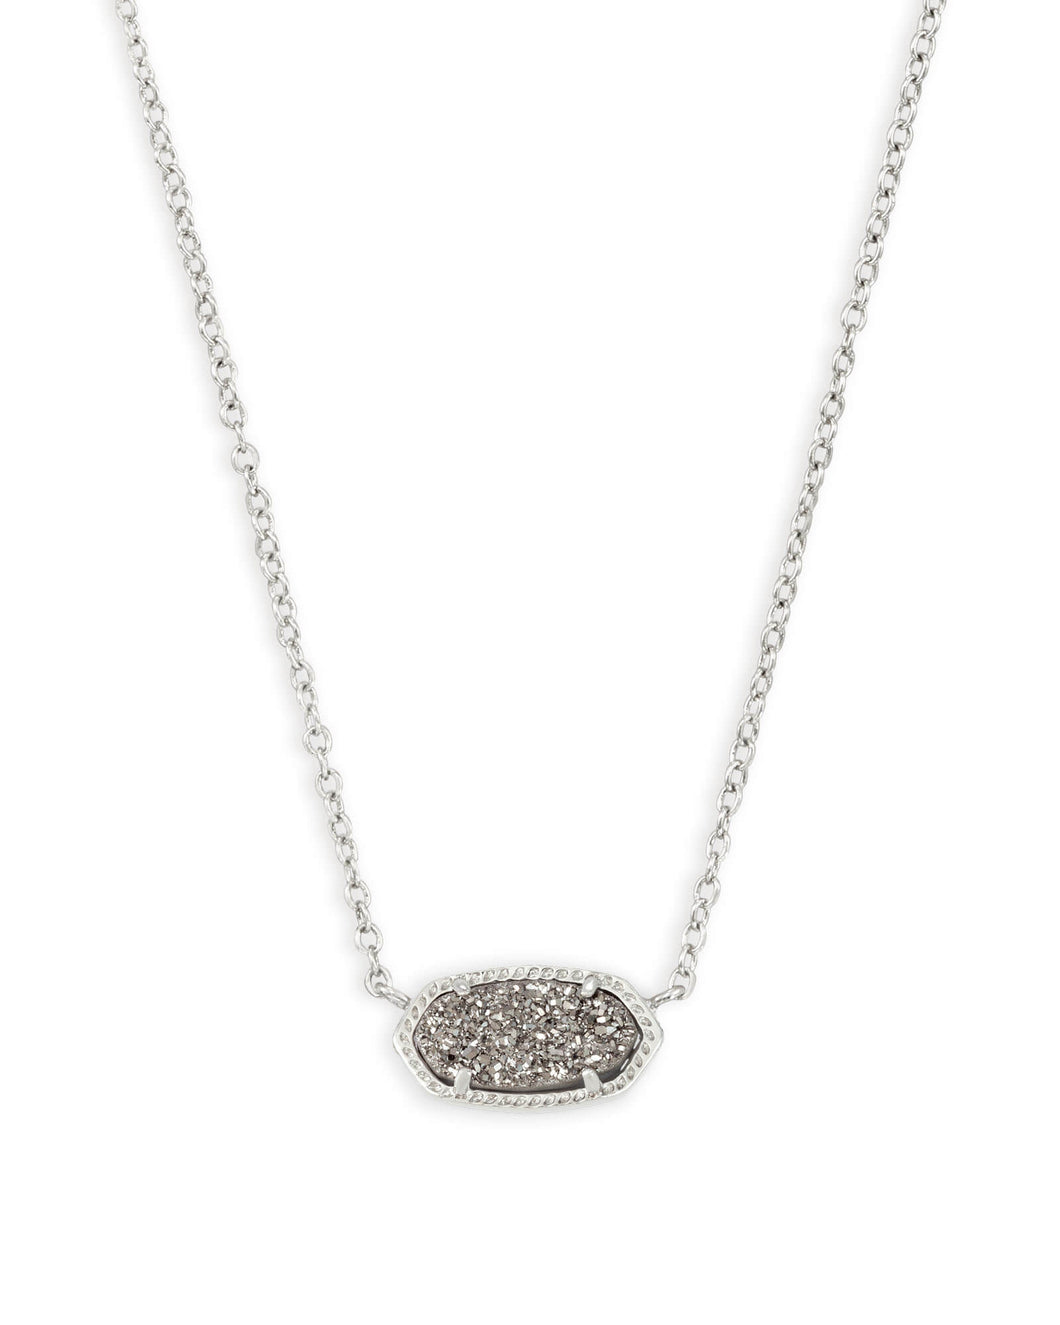 Kendra Scott Elisa Silver Pendant Necklace in Platinum Druzy